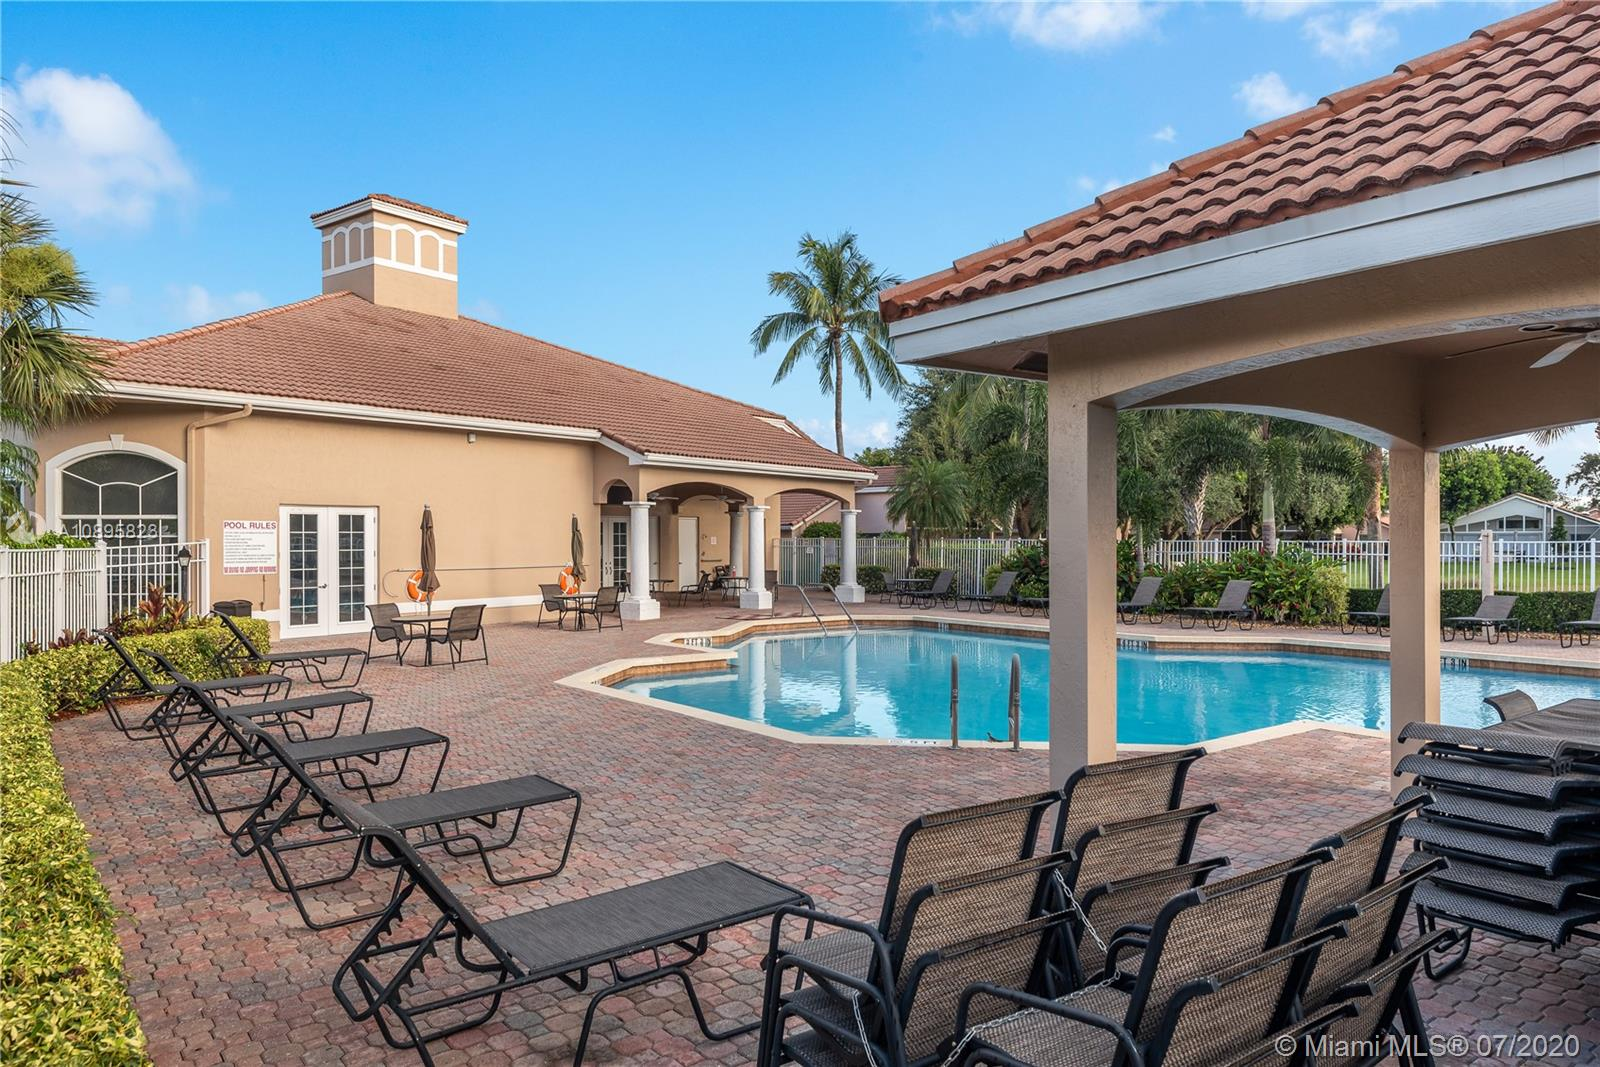 POOLSIDE AT THE CLUBHOUSE